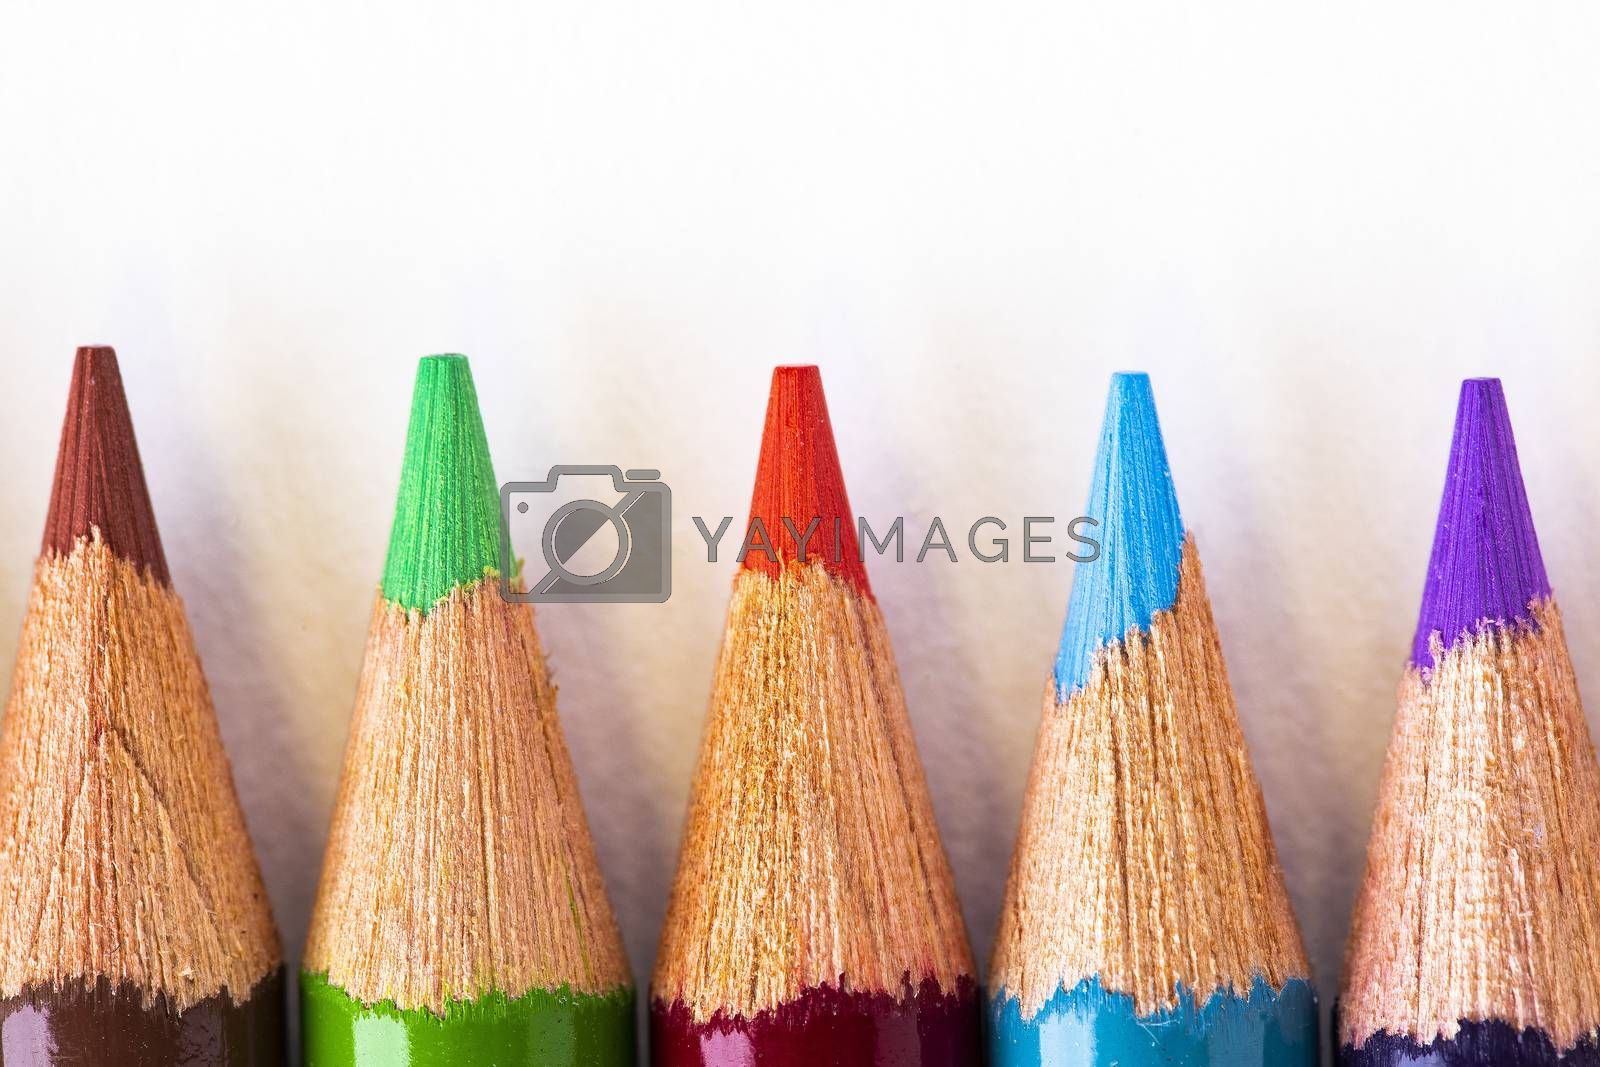 Colorful Pencil Points by Charlie Floyd